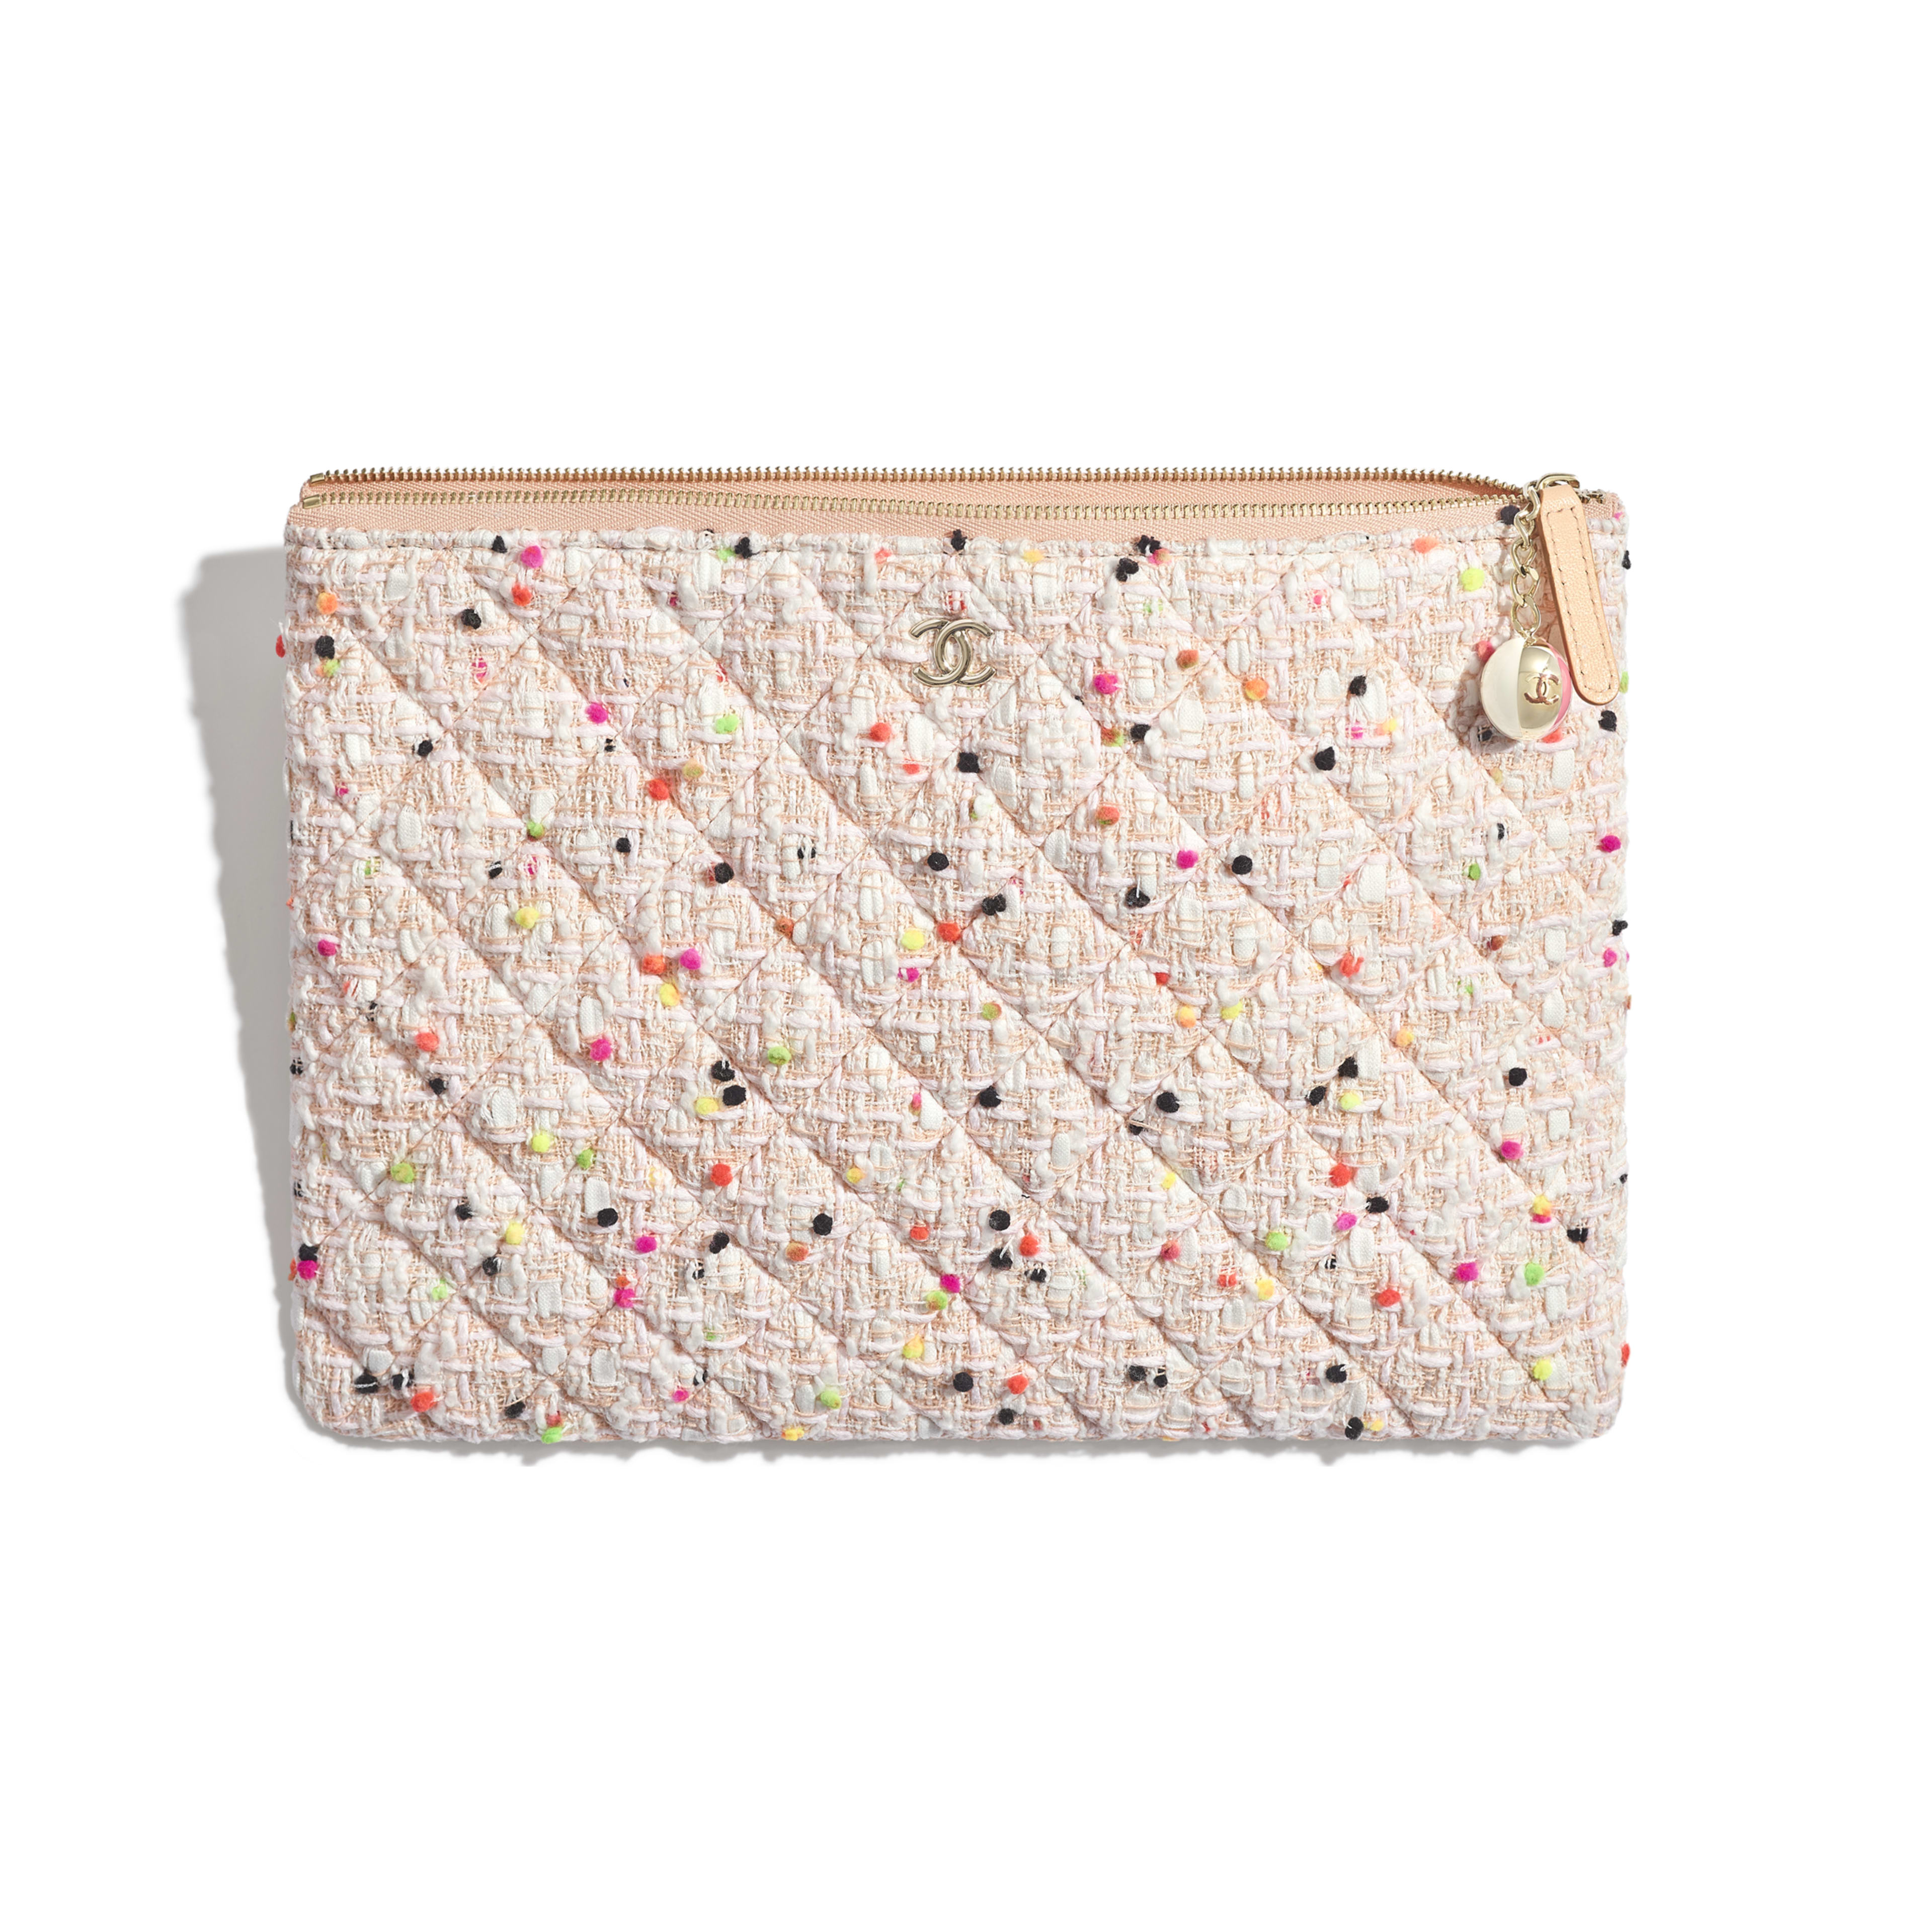 Classic Pouch - Coral & White - Cotton Tweed & Gold-Tone Metal - Other view - see full sized version